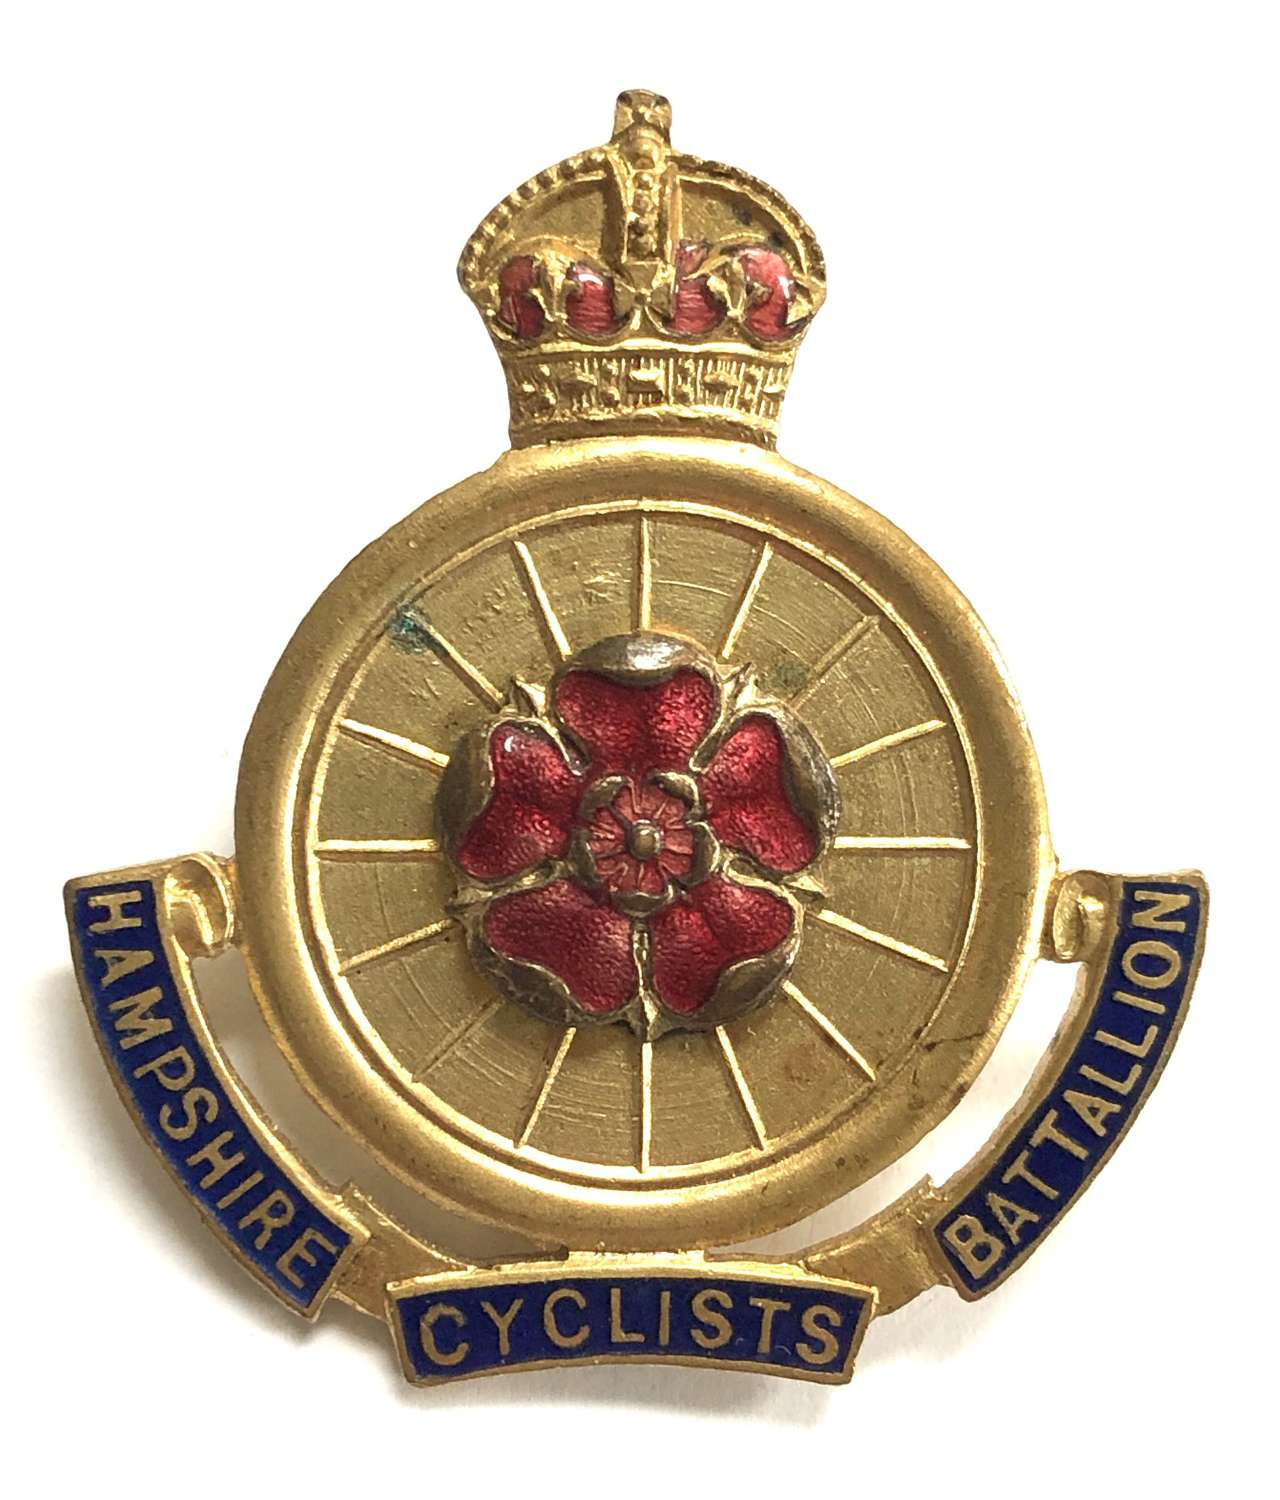 9th Cyclist Bn.Hampshire Regt. Officer's cap badge circa 1911-20